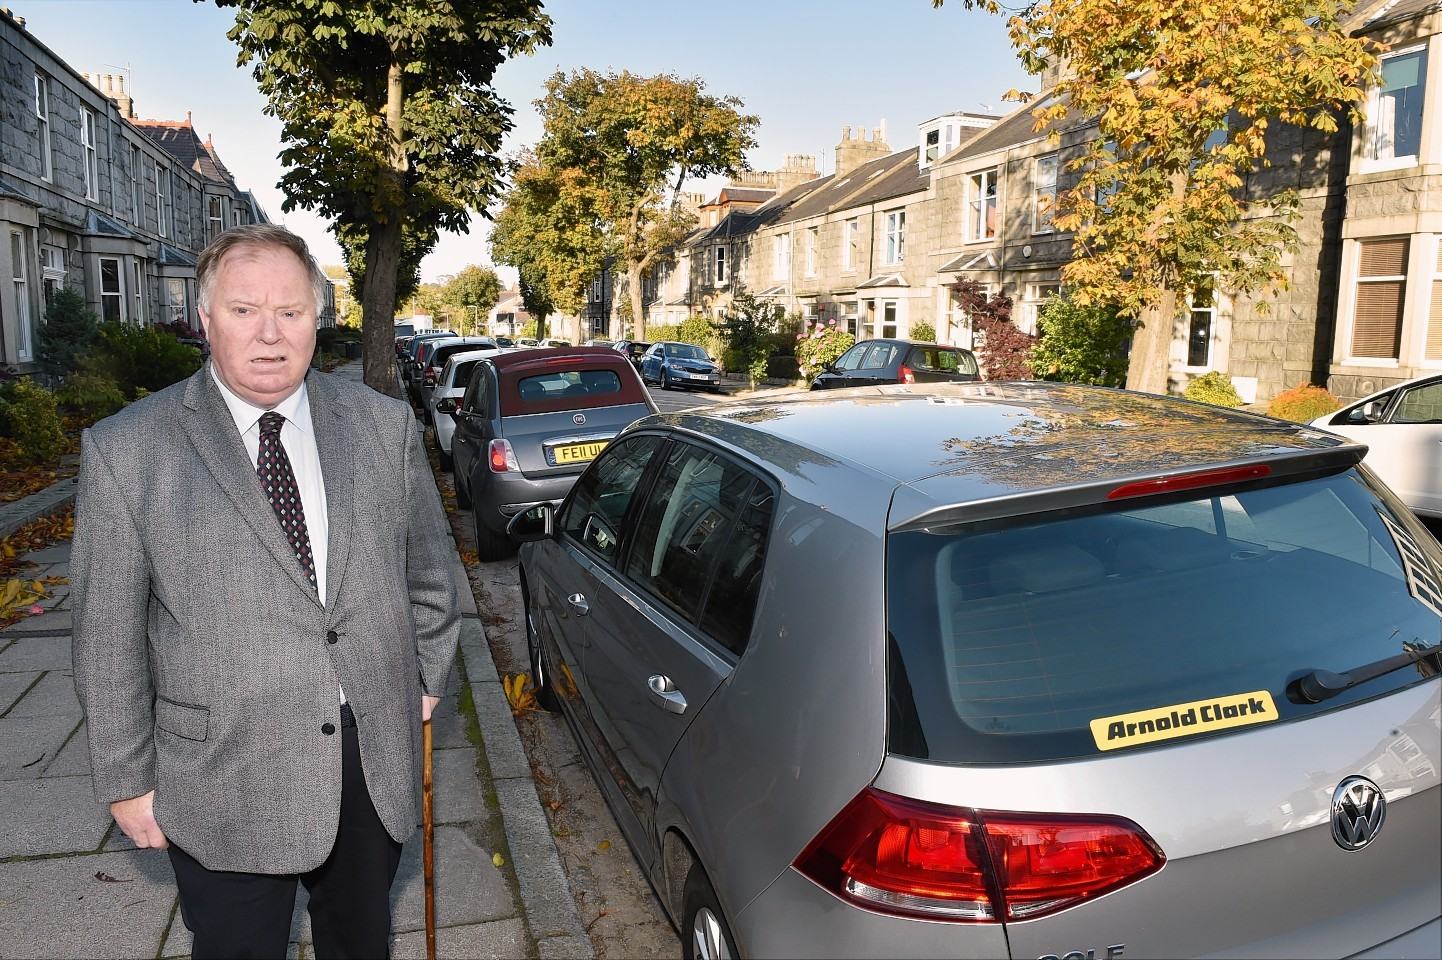 Cllr Bill Cormie at Rosebury Street in Aberdeen. A house there has applied for it to be converted to multiple occupancy. Picture by COLIN RENNIE October 22, 2015.